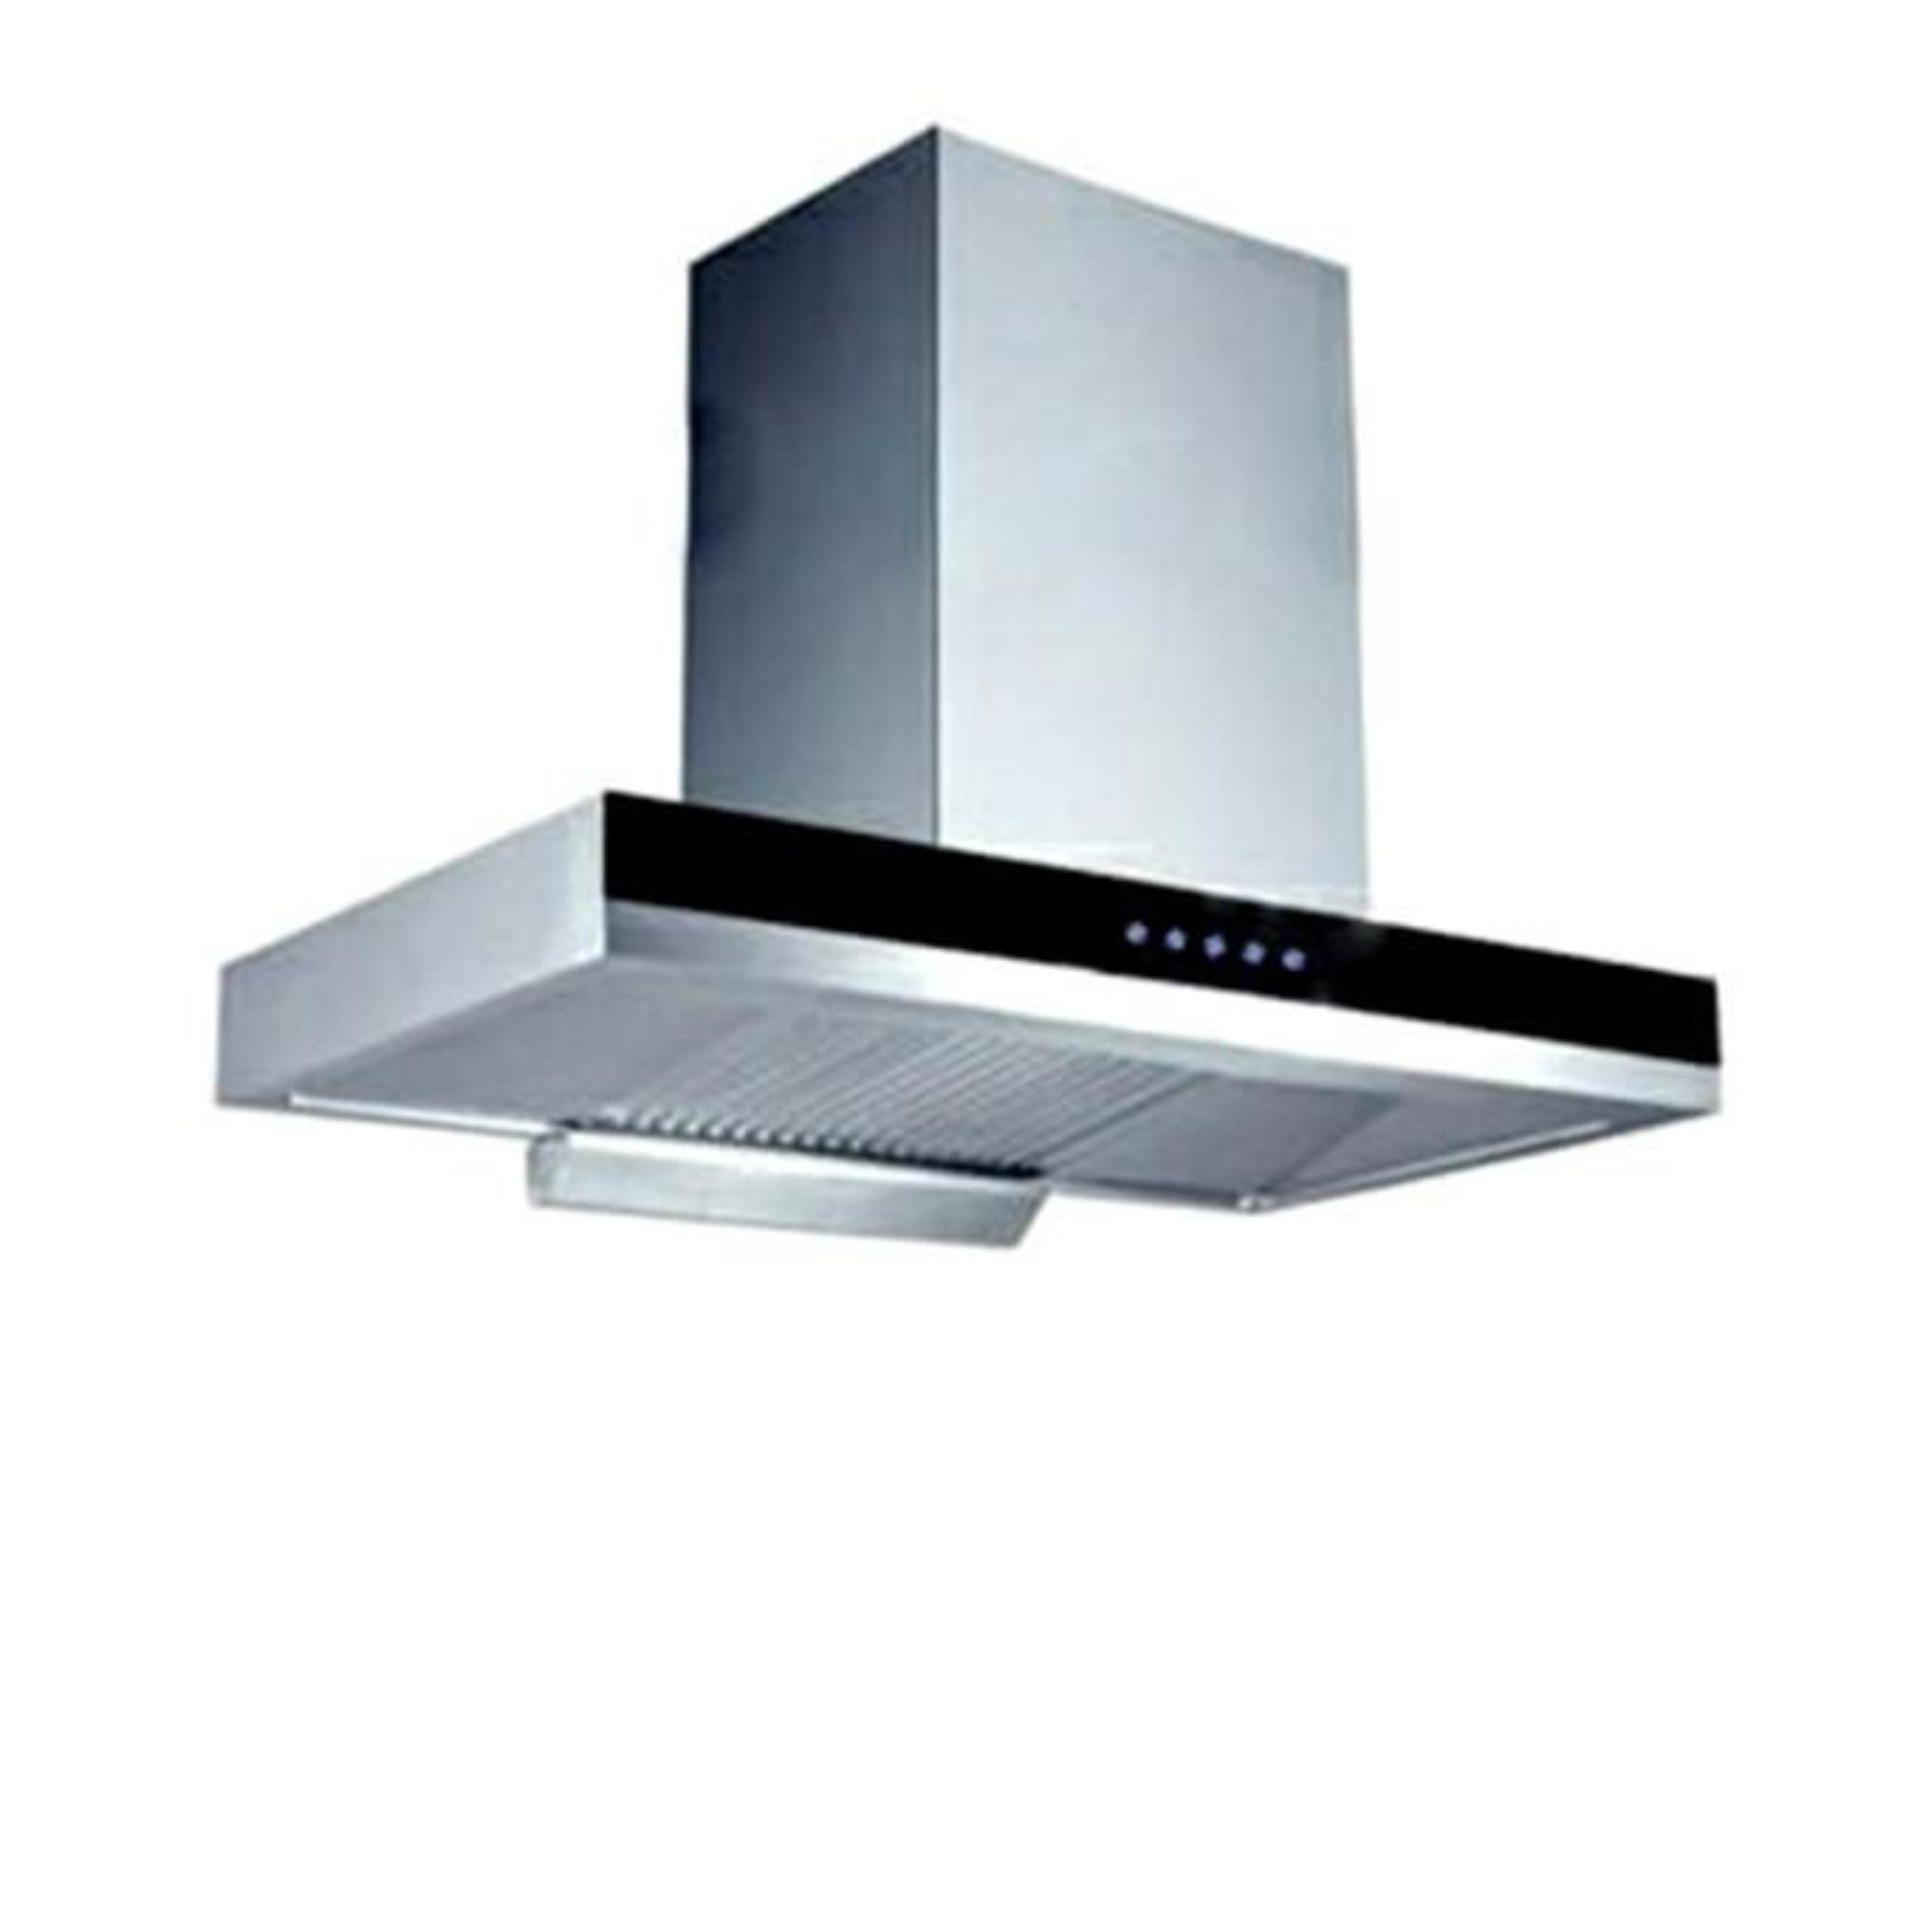 Kitchen Hood Price In Bangladesh - Kitchen Chimney Online At Daraz